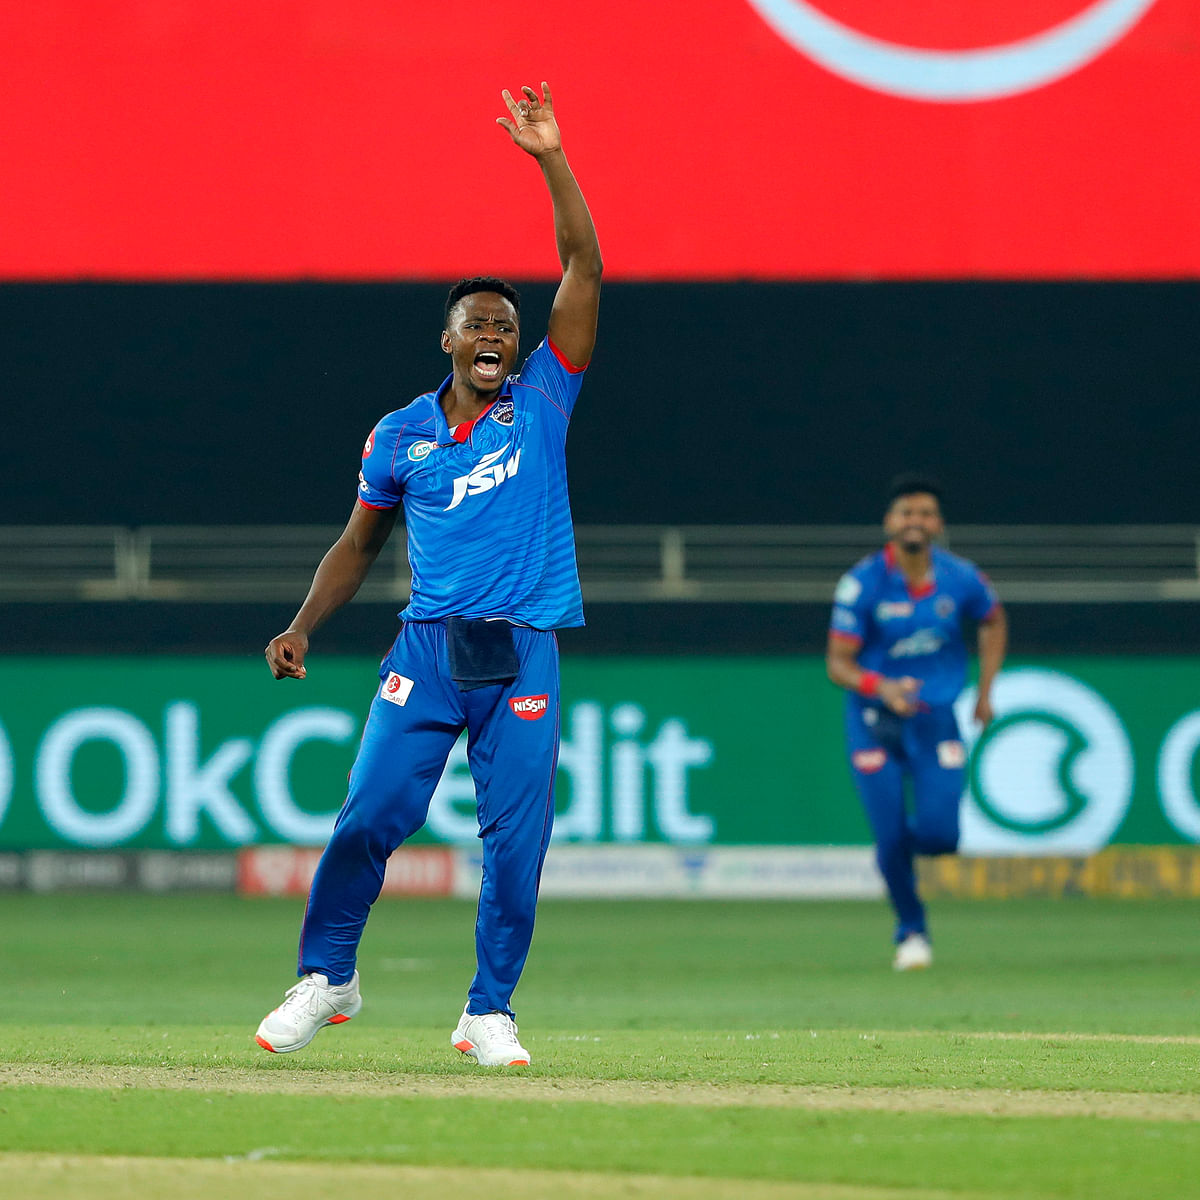 IPL 2020: Marcus Stoinis, Kagiso Rabada pack a punch to help DC take down KXIP in super-over